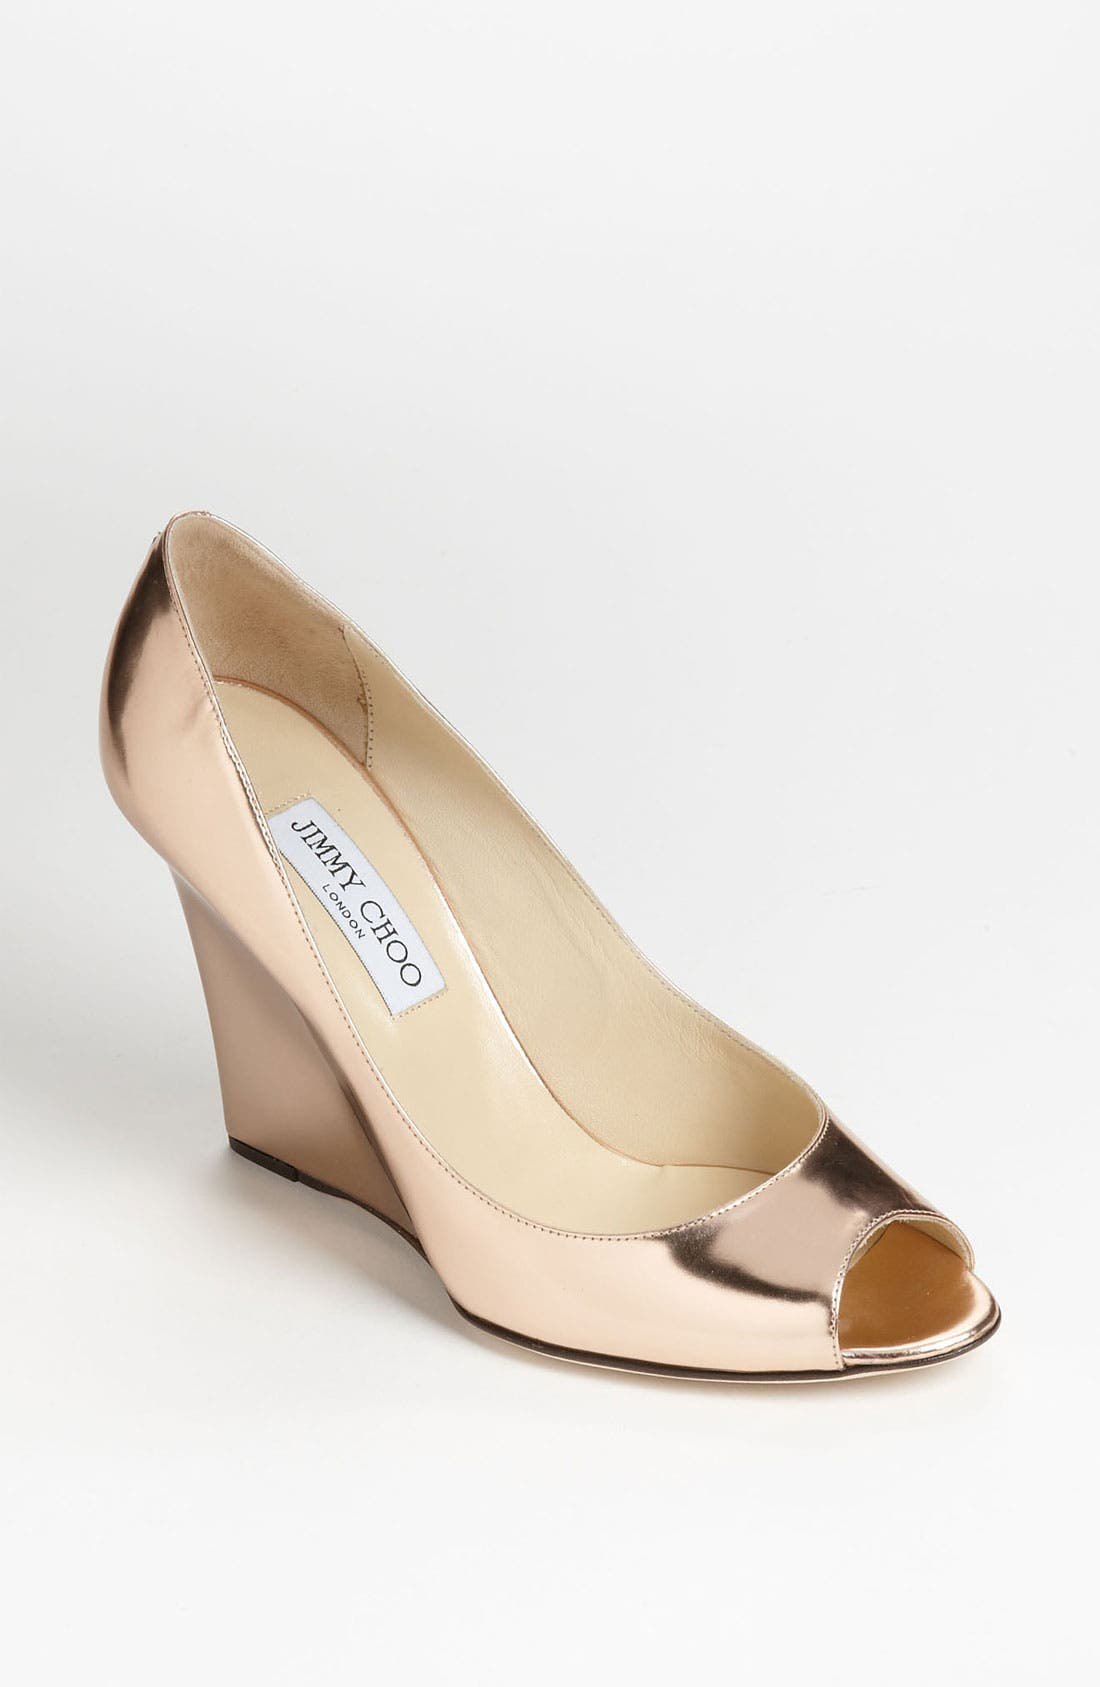 Main Image - Jimmy Choo 'Bello' Pump